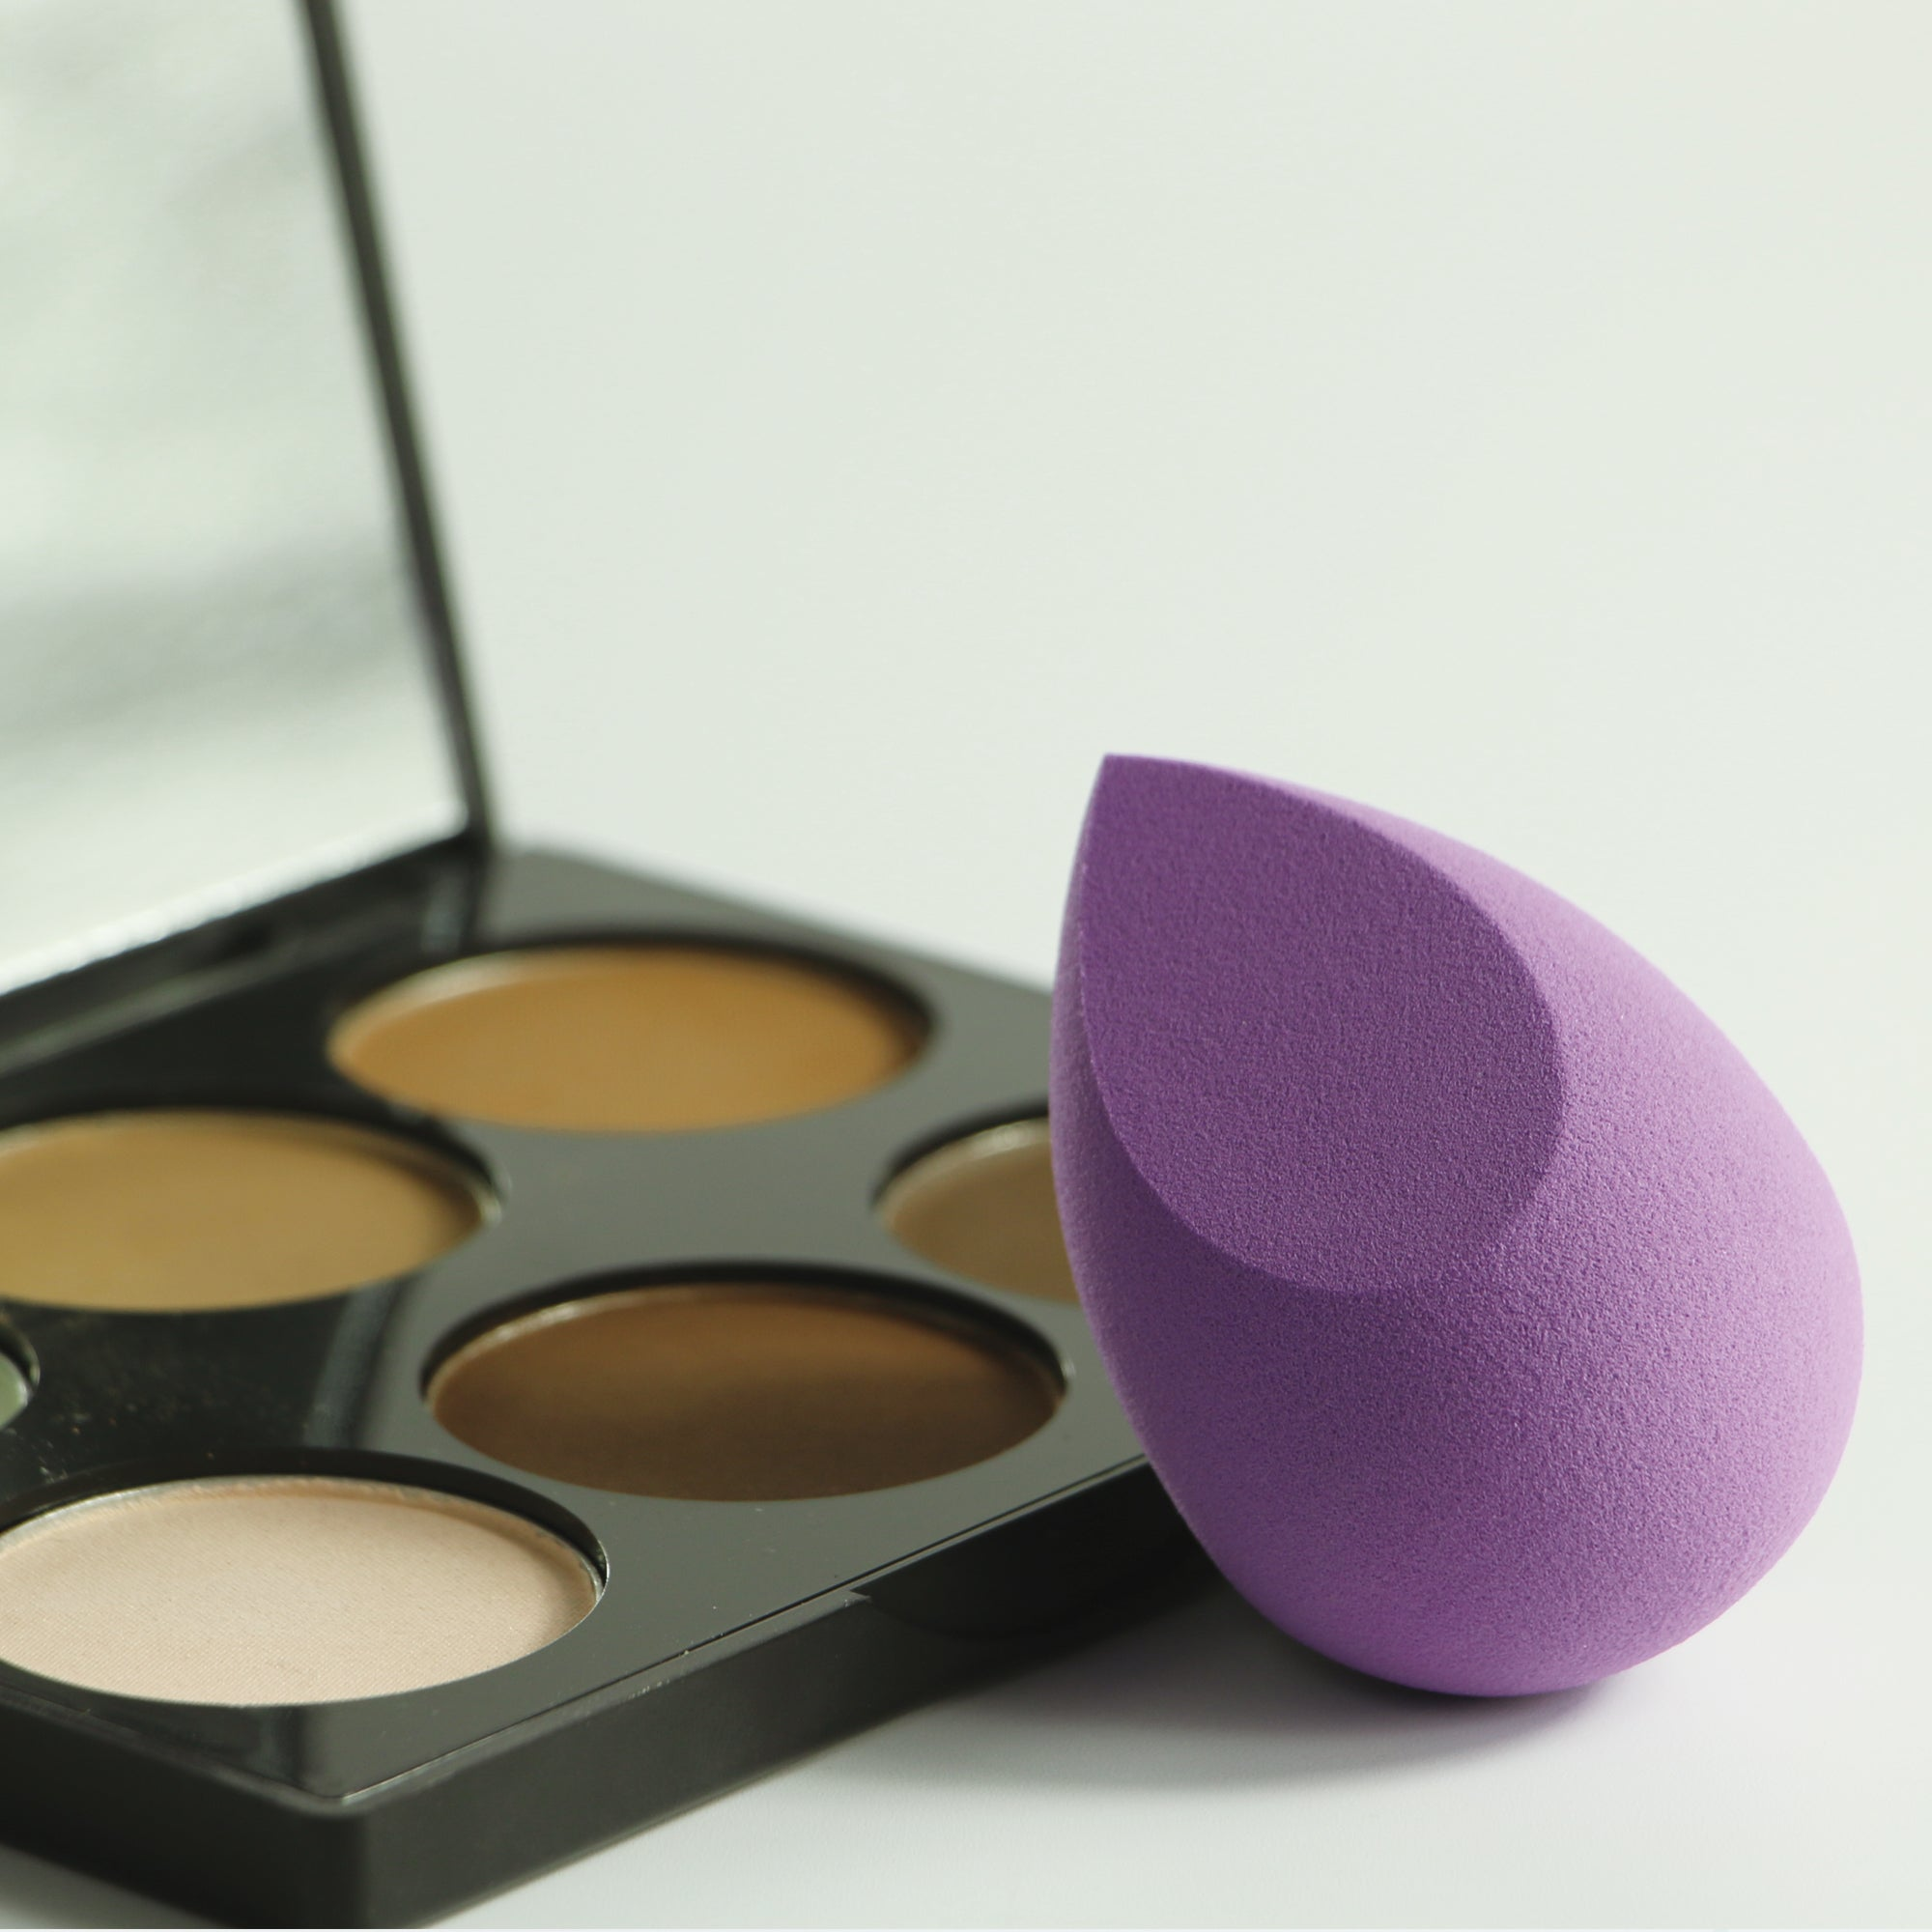 Heart-Shaped Blending Sponge